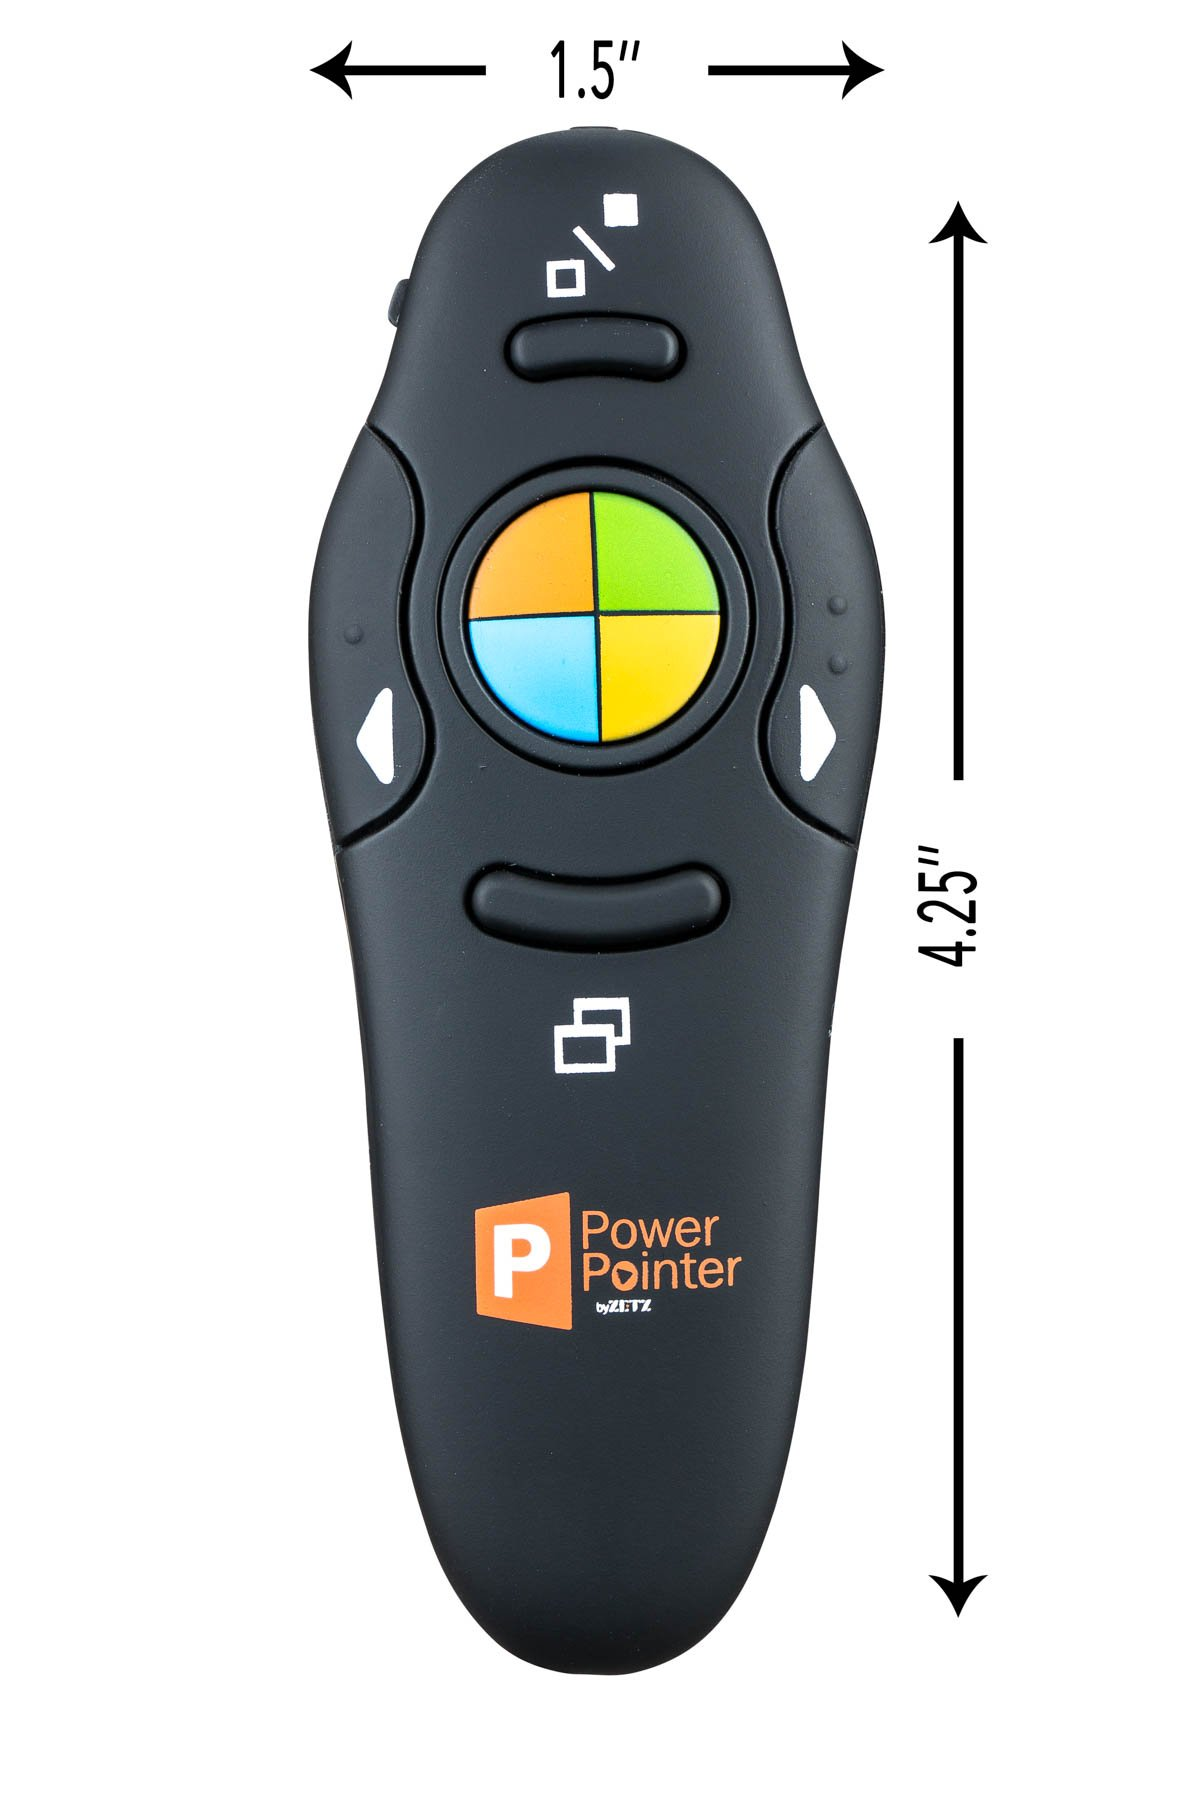 ZETZ Wireless Presenter Remote Control With USB & Laser Pointer | Powerful & Ergonomic PPT Clicker Easy To Use | For Microsoft Power Point Presentations, Excel & Interaction With Crowd by Zetz (Image #5)